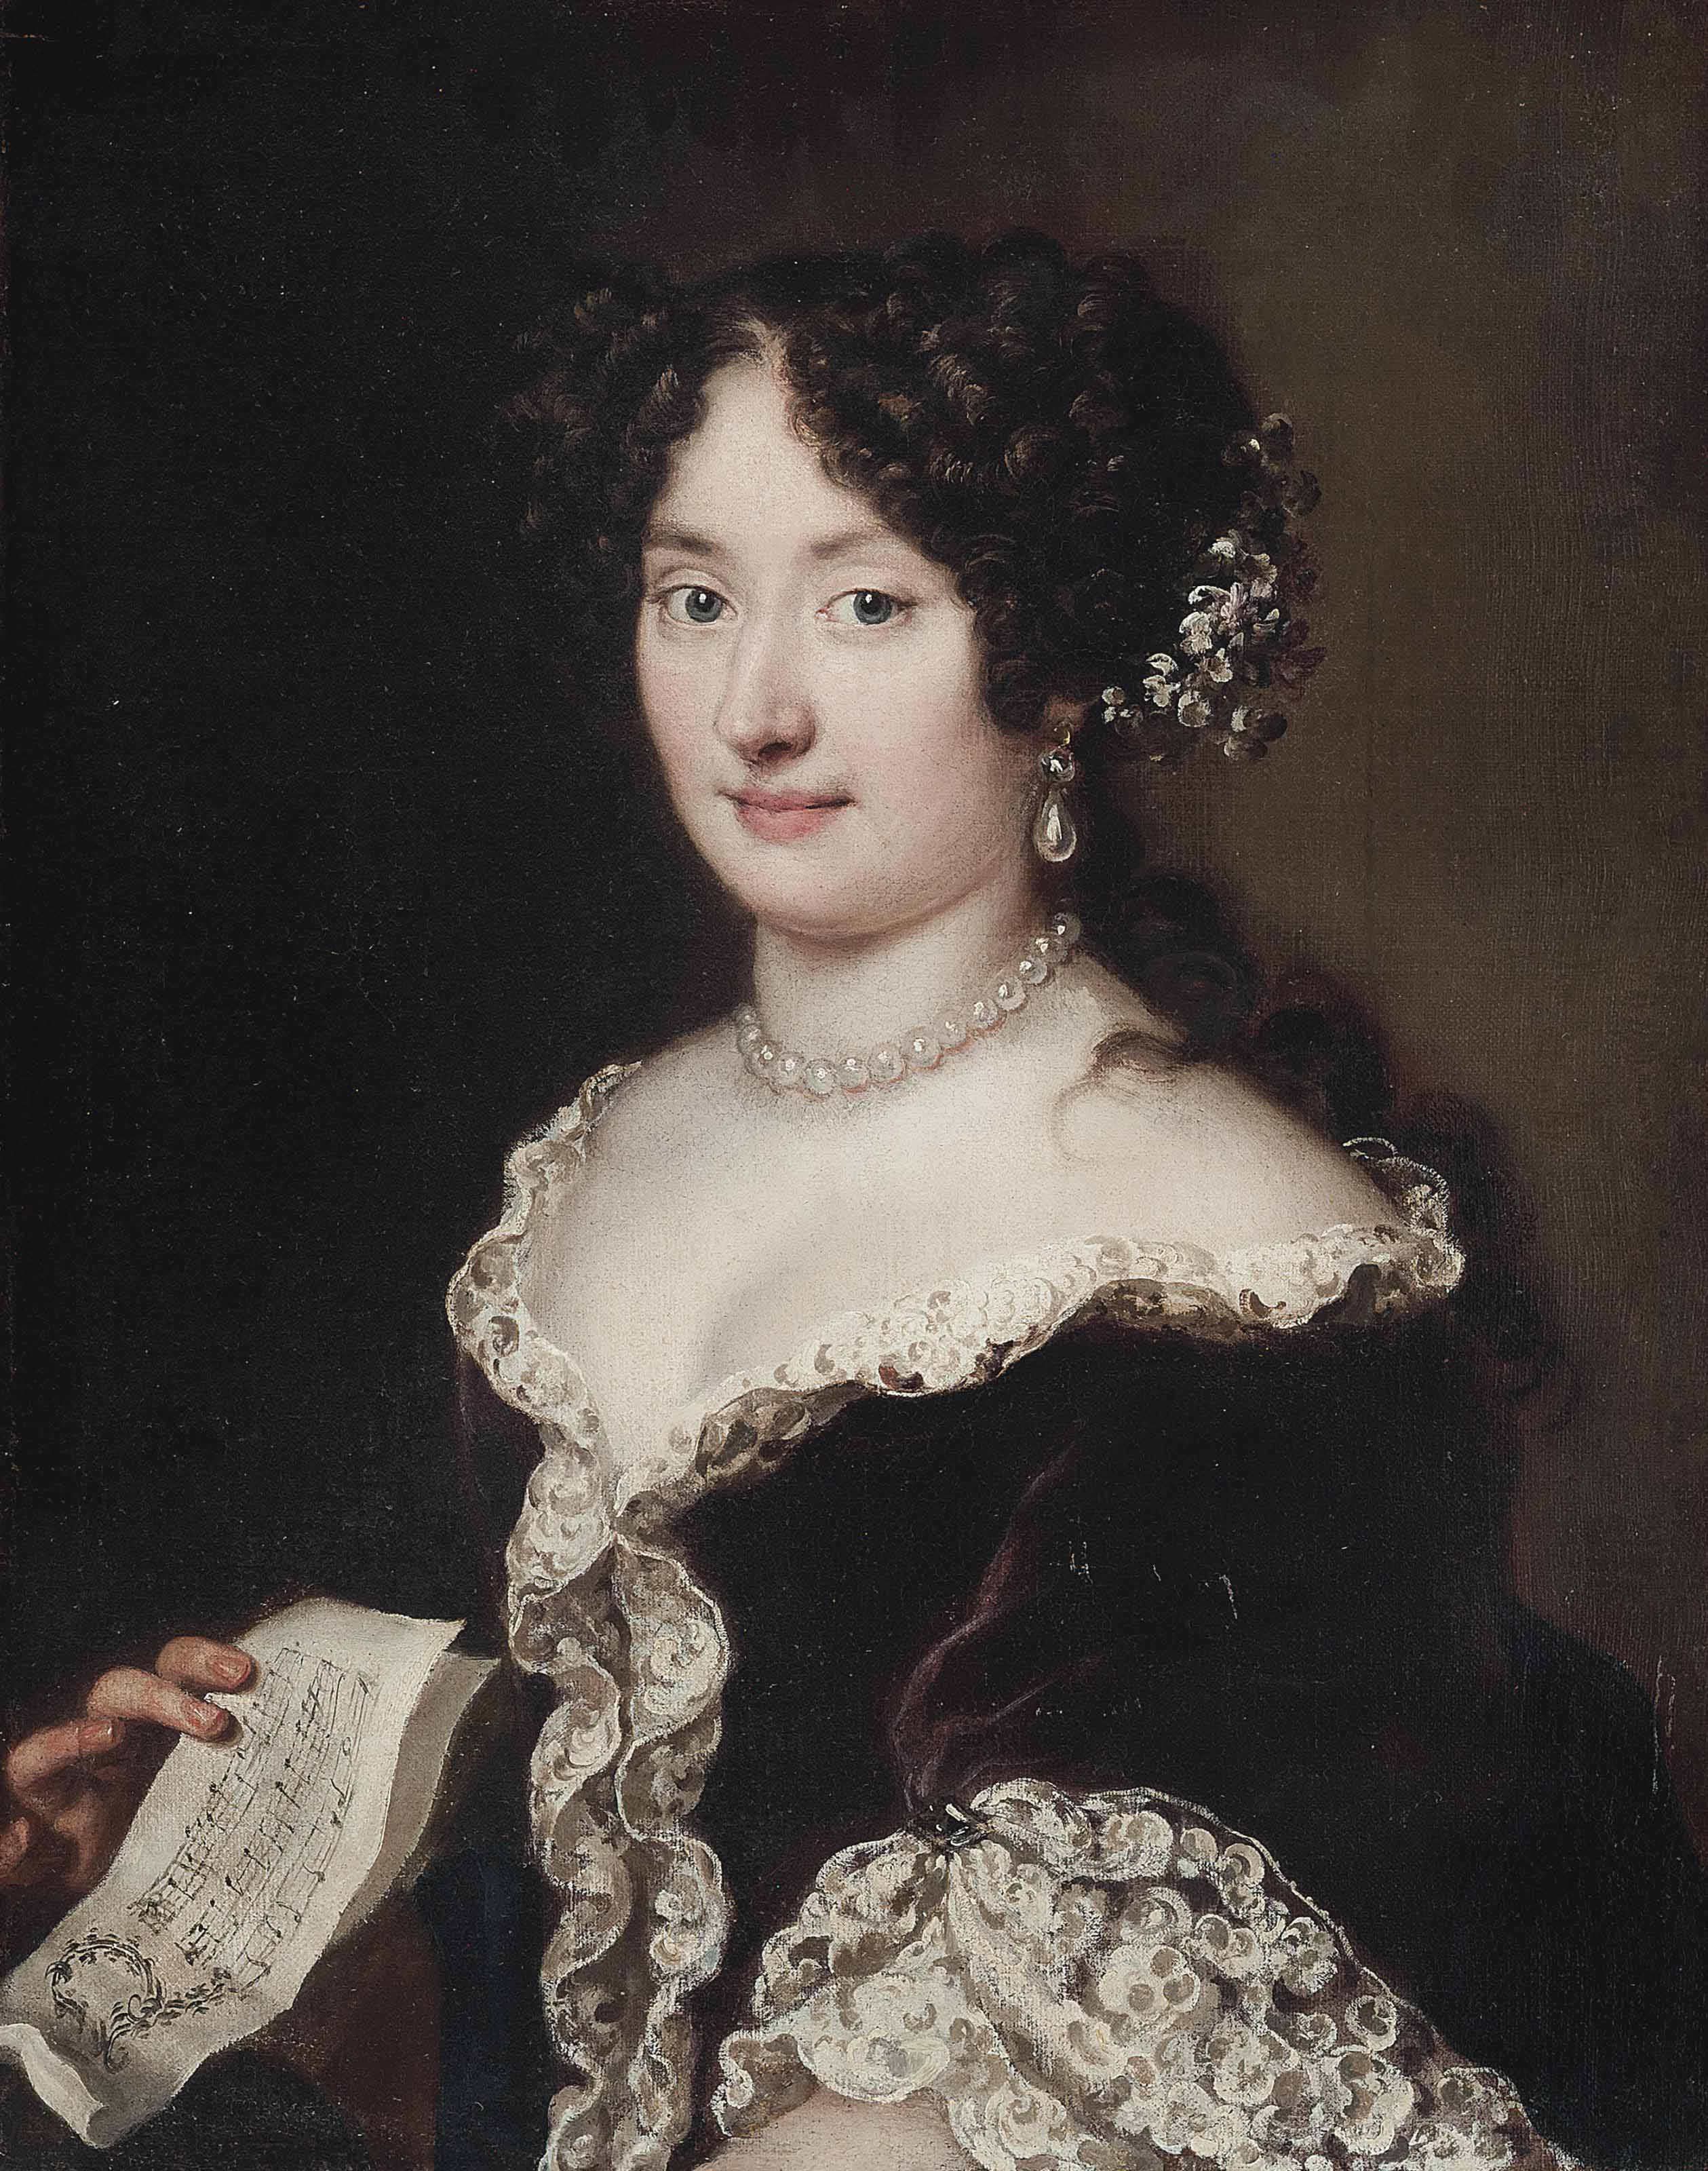 Portrait of a lady, half-length, in a brown dress, with flowers in her hair and wearing a pearl necklace and earrings, holding a sheet of music in her right hand